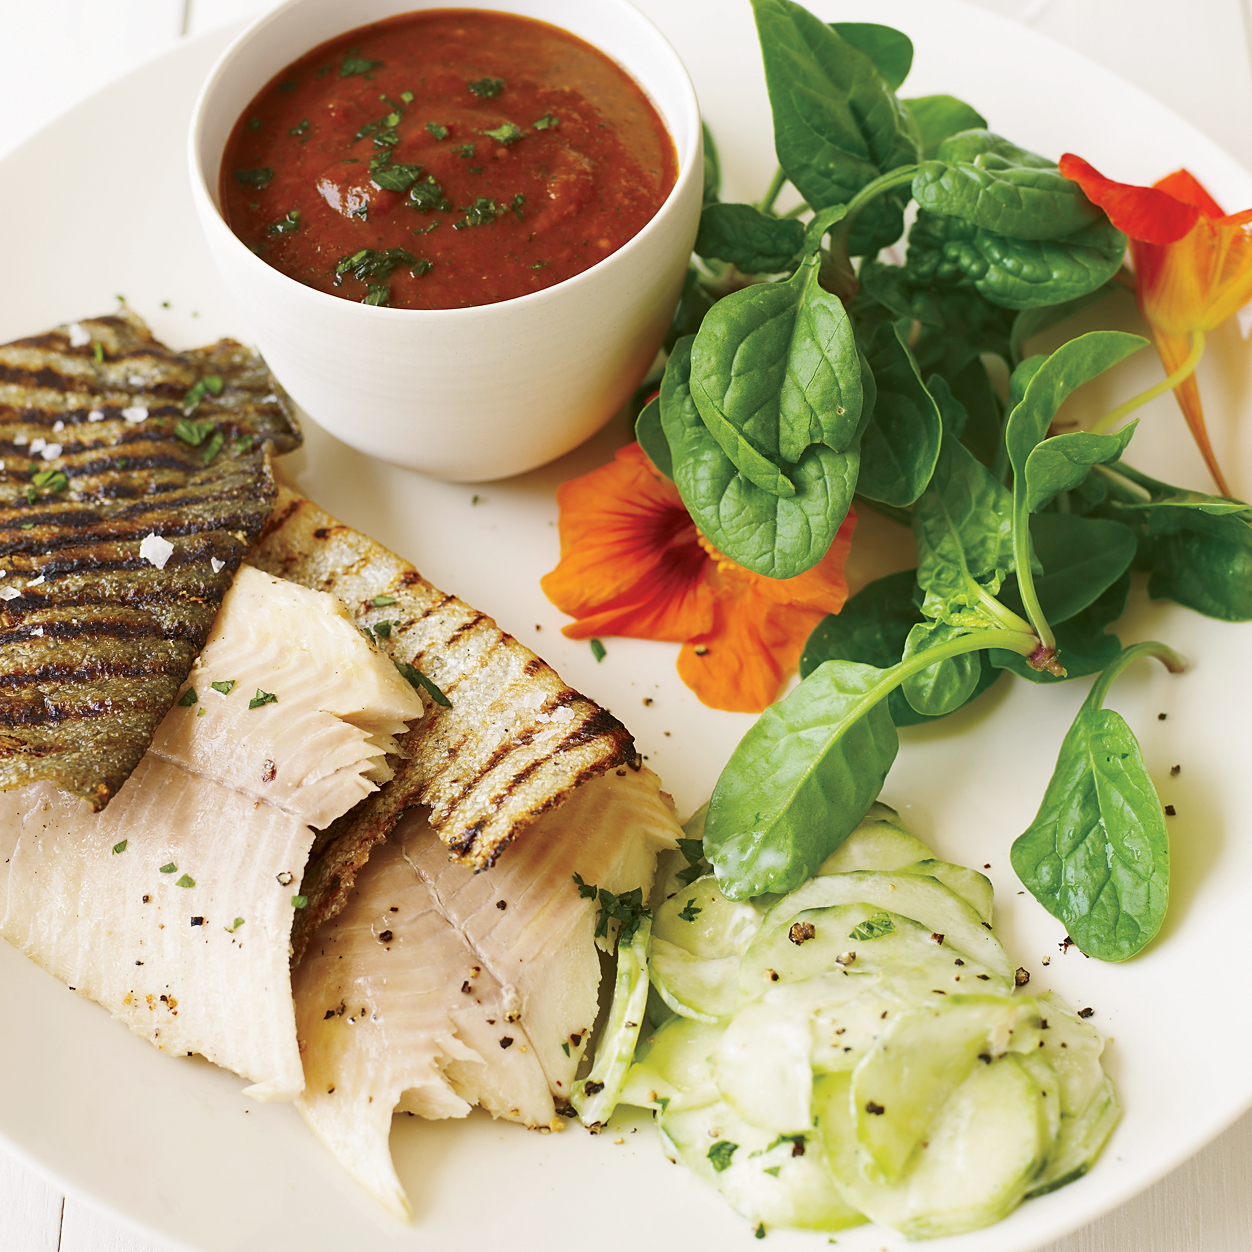 Grilled Trout with Smoky Tomatillo Sauce and Cucumber Salad